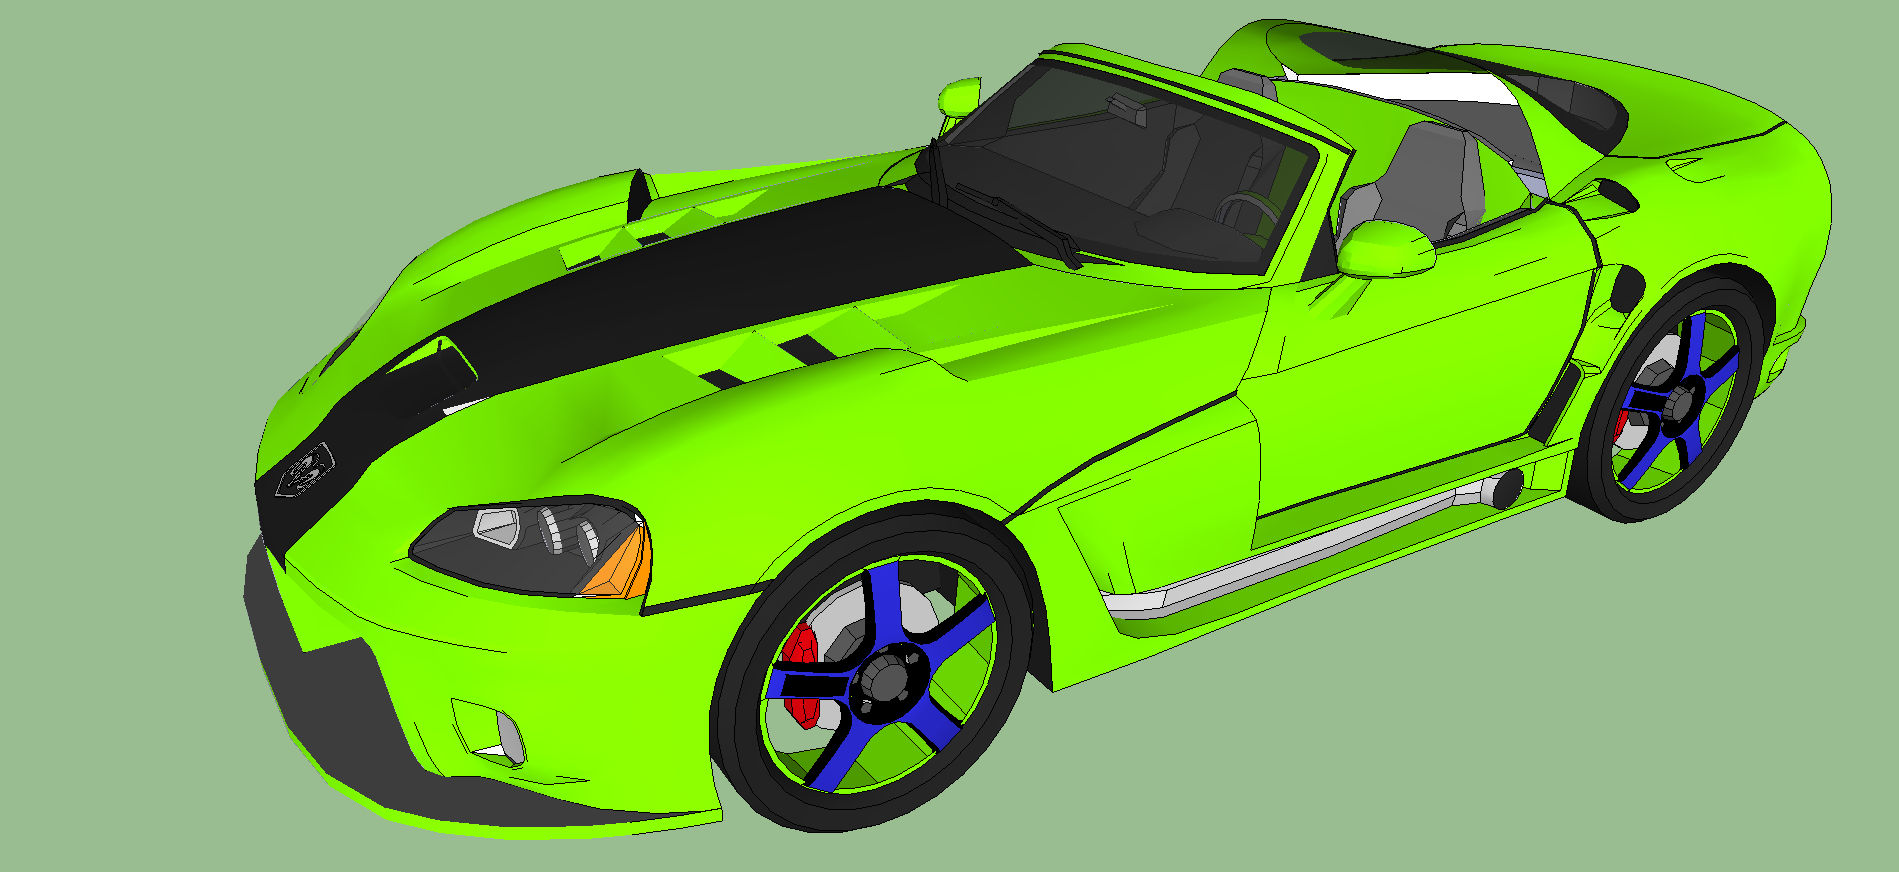 Green Car From Cars: The Sweetest *StarGirl1721* Images Green Car HD Wallpaper